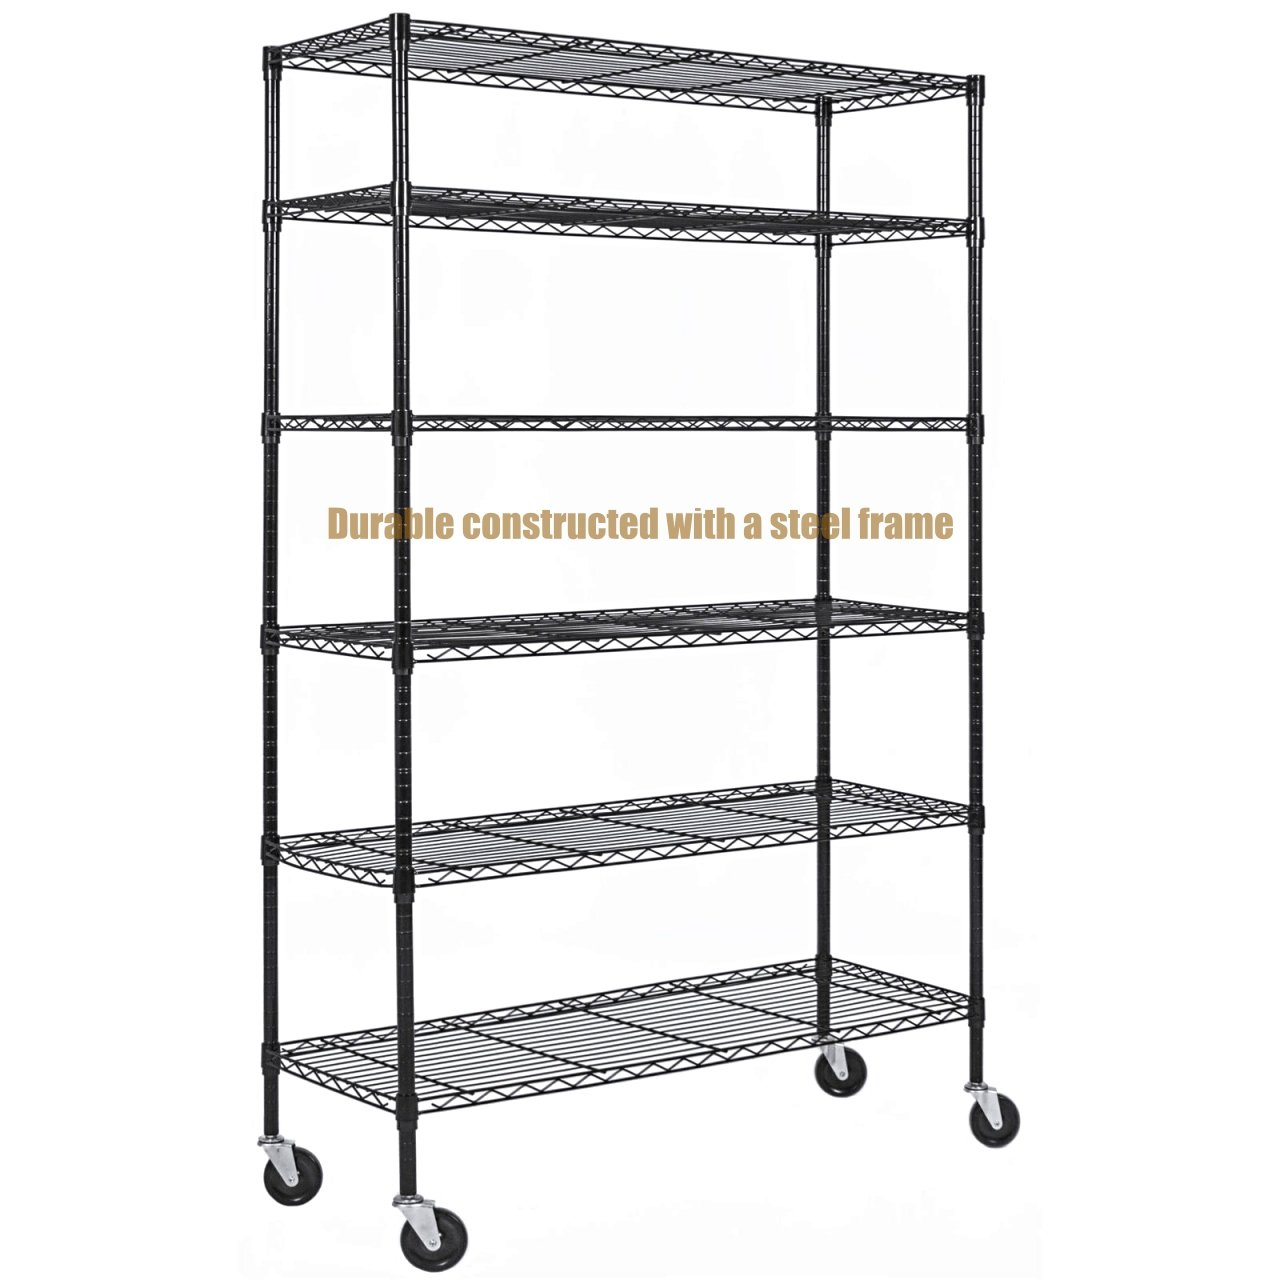 Durable Constructed 6-Tier Steel Shelving Storage Organizer Adjustable With Castor Wheels - Black Finish #1145 by Koonlert@shop (Image #1)